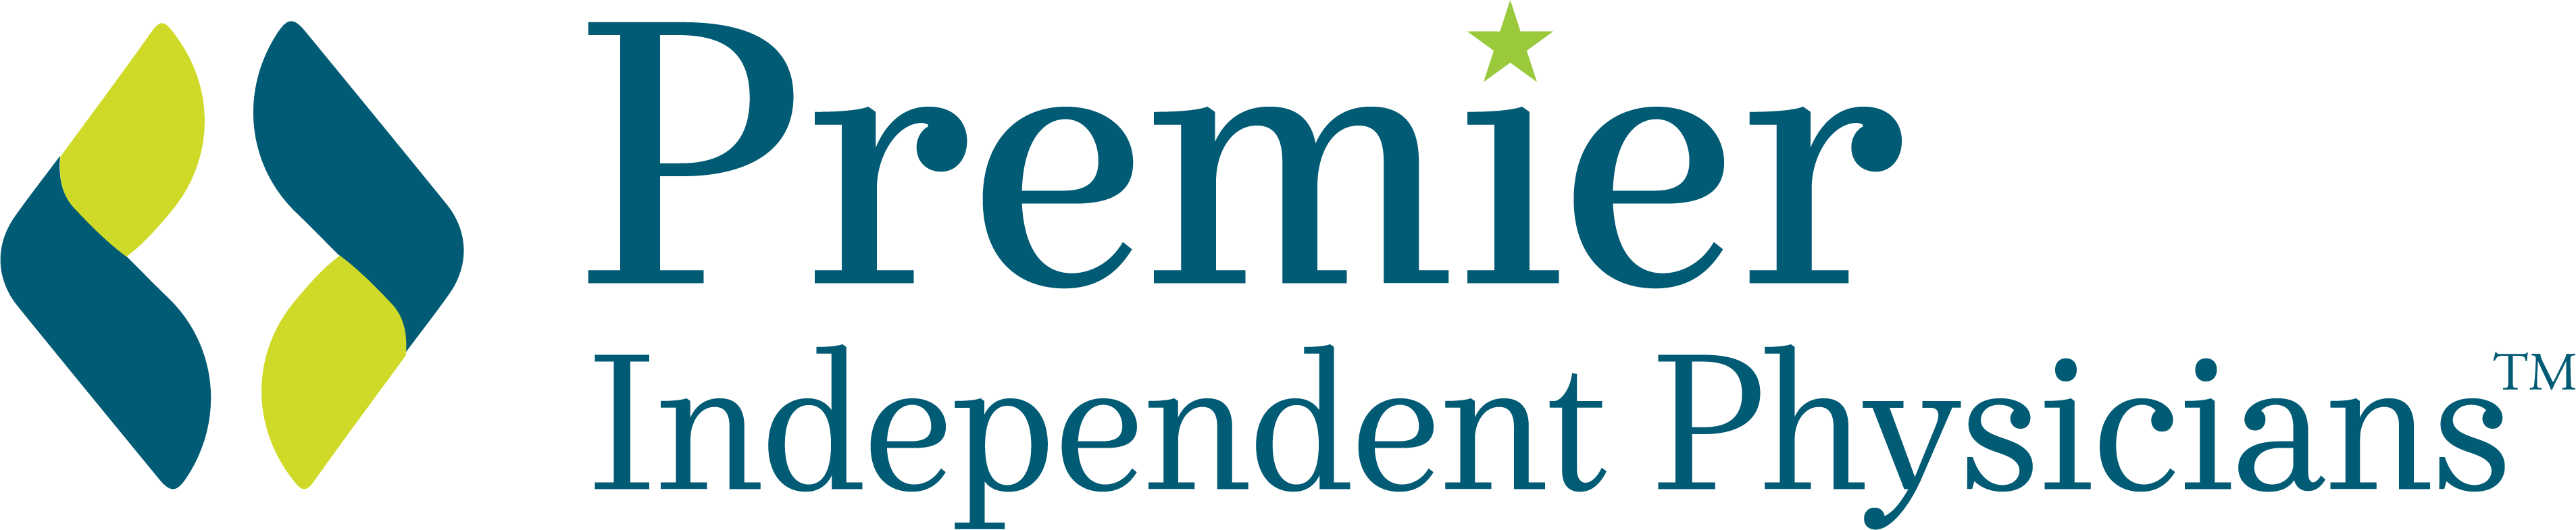 Premier Independent Physicians